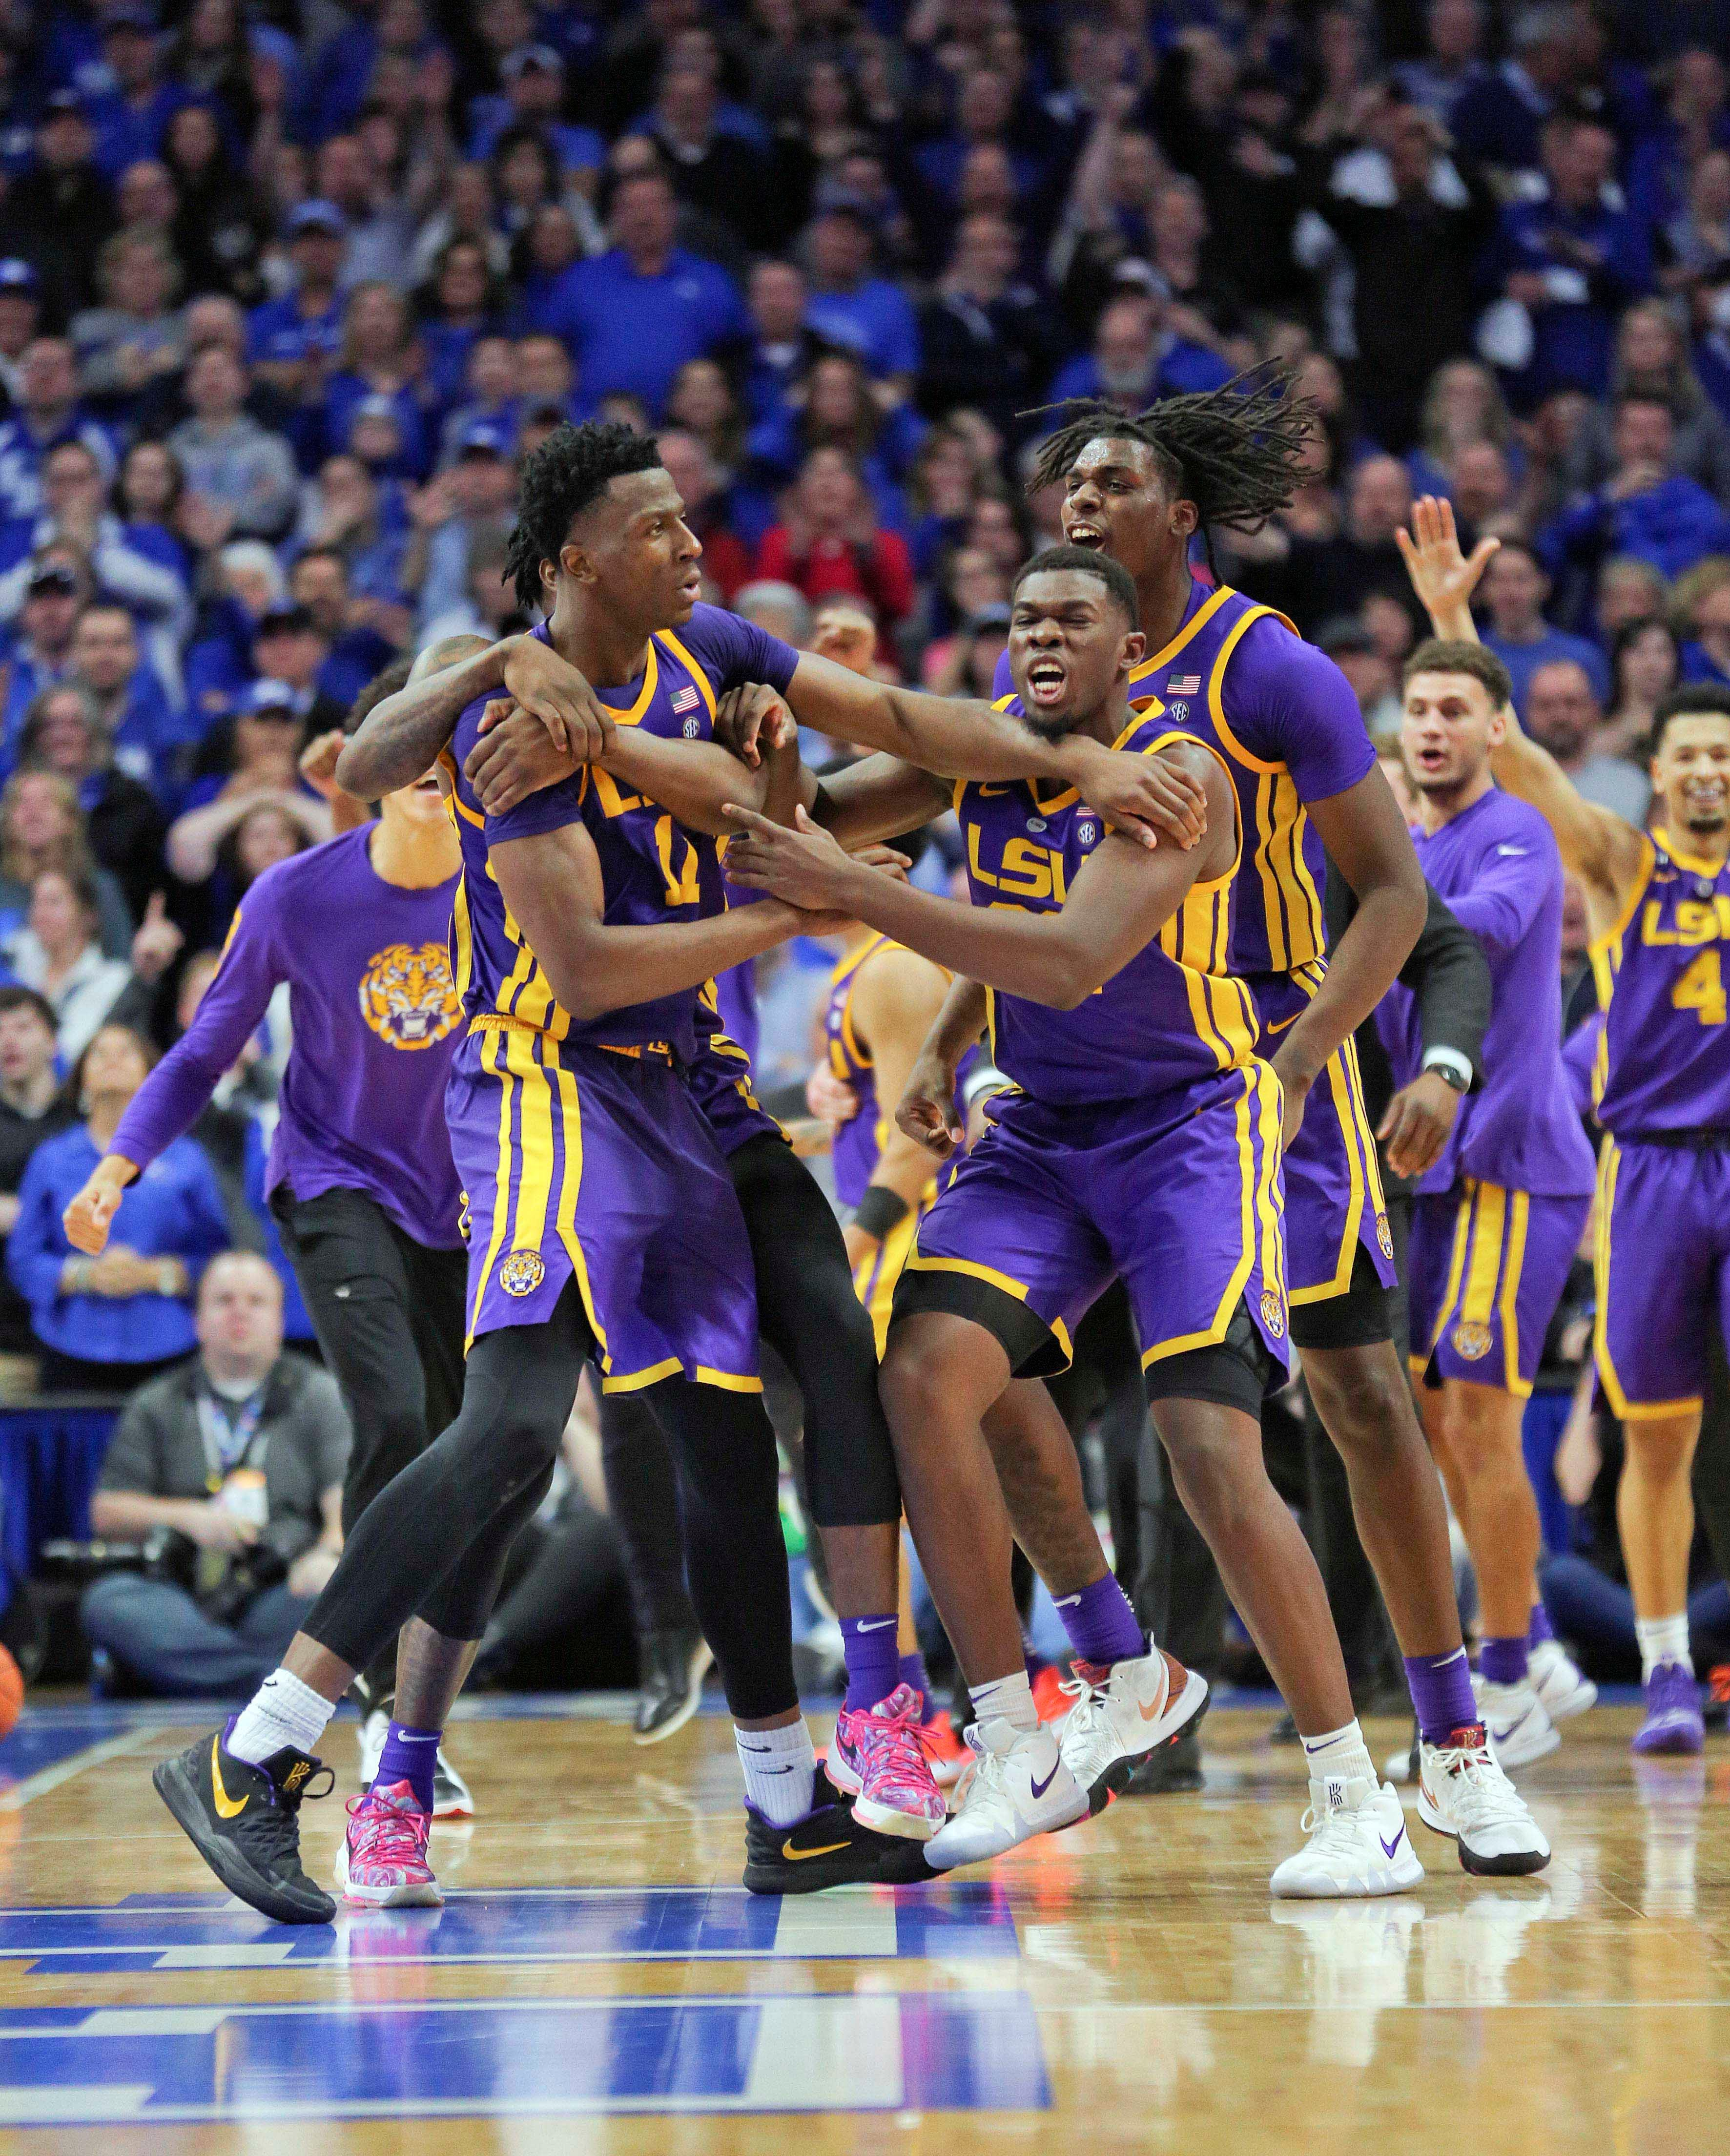 No. 21 LSU snaps No. 5 Kentucky's 10-game winning streak in stunning fashion